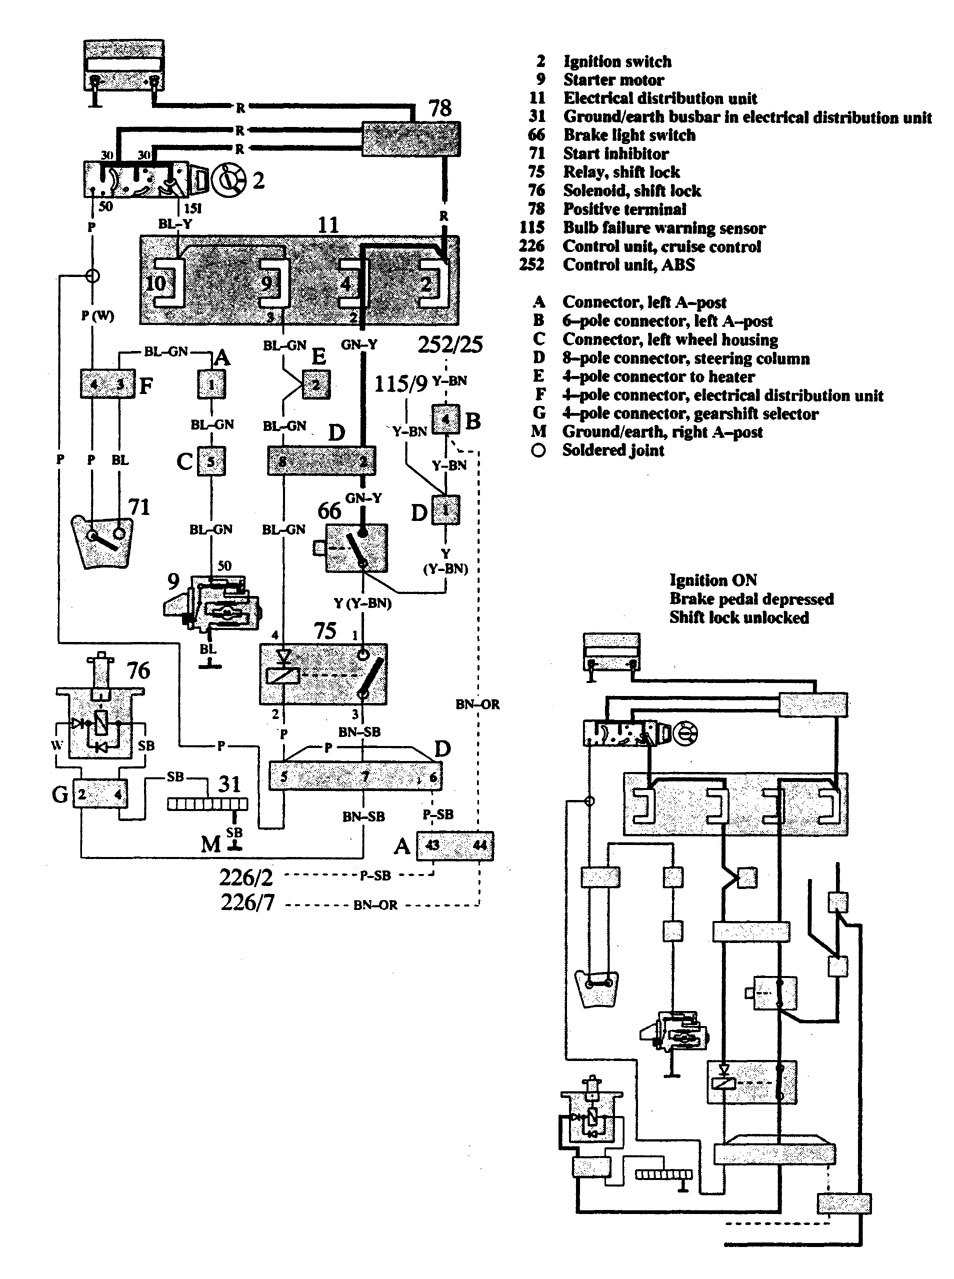 Volvo 940 Wiring Diagram 1994 Library 1986 740 91 Electrical Diagrams U2022 For Free